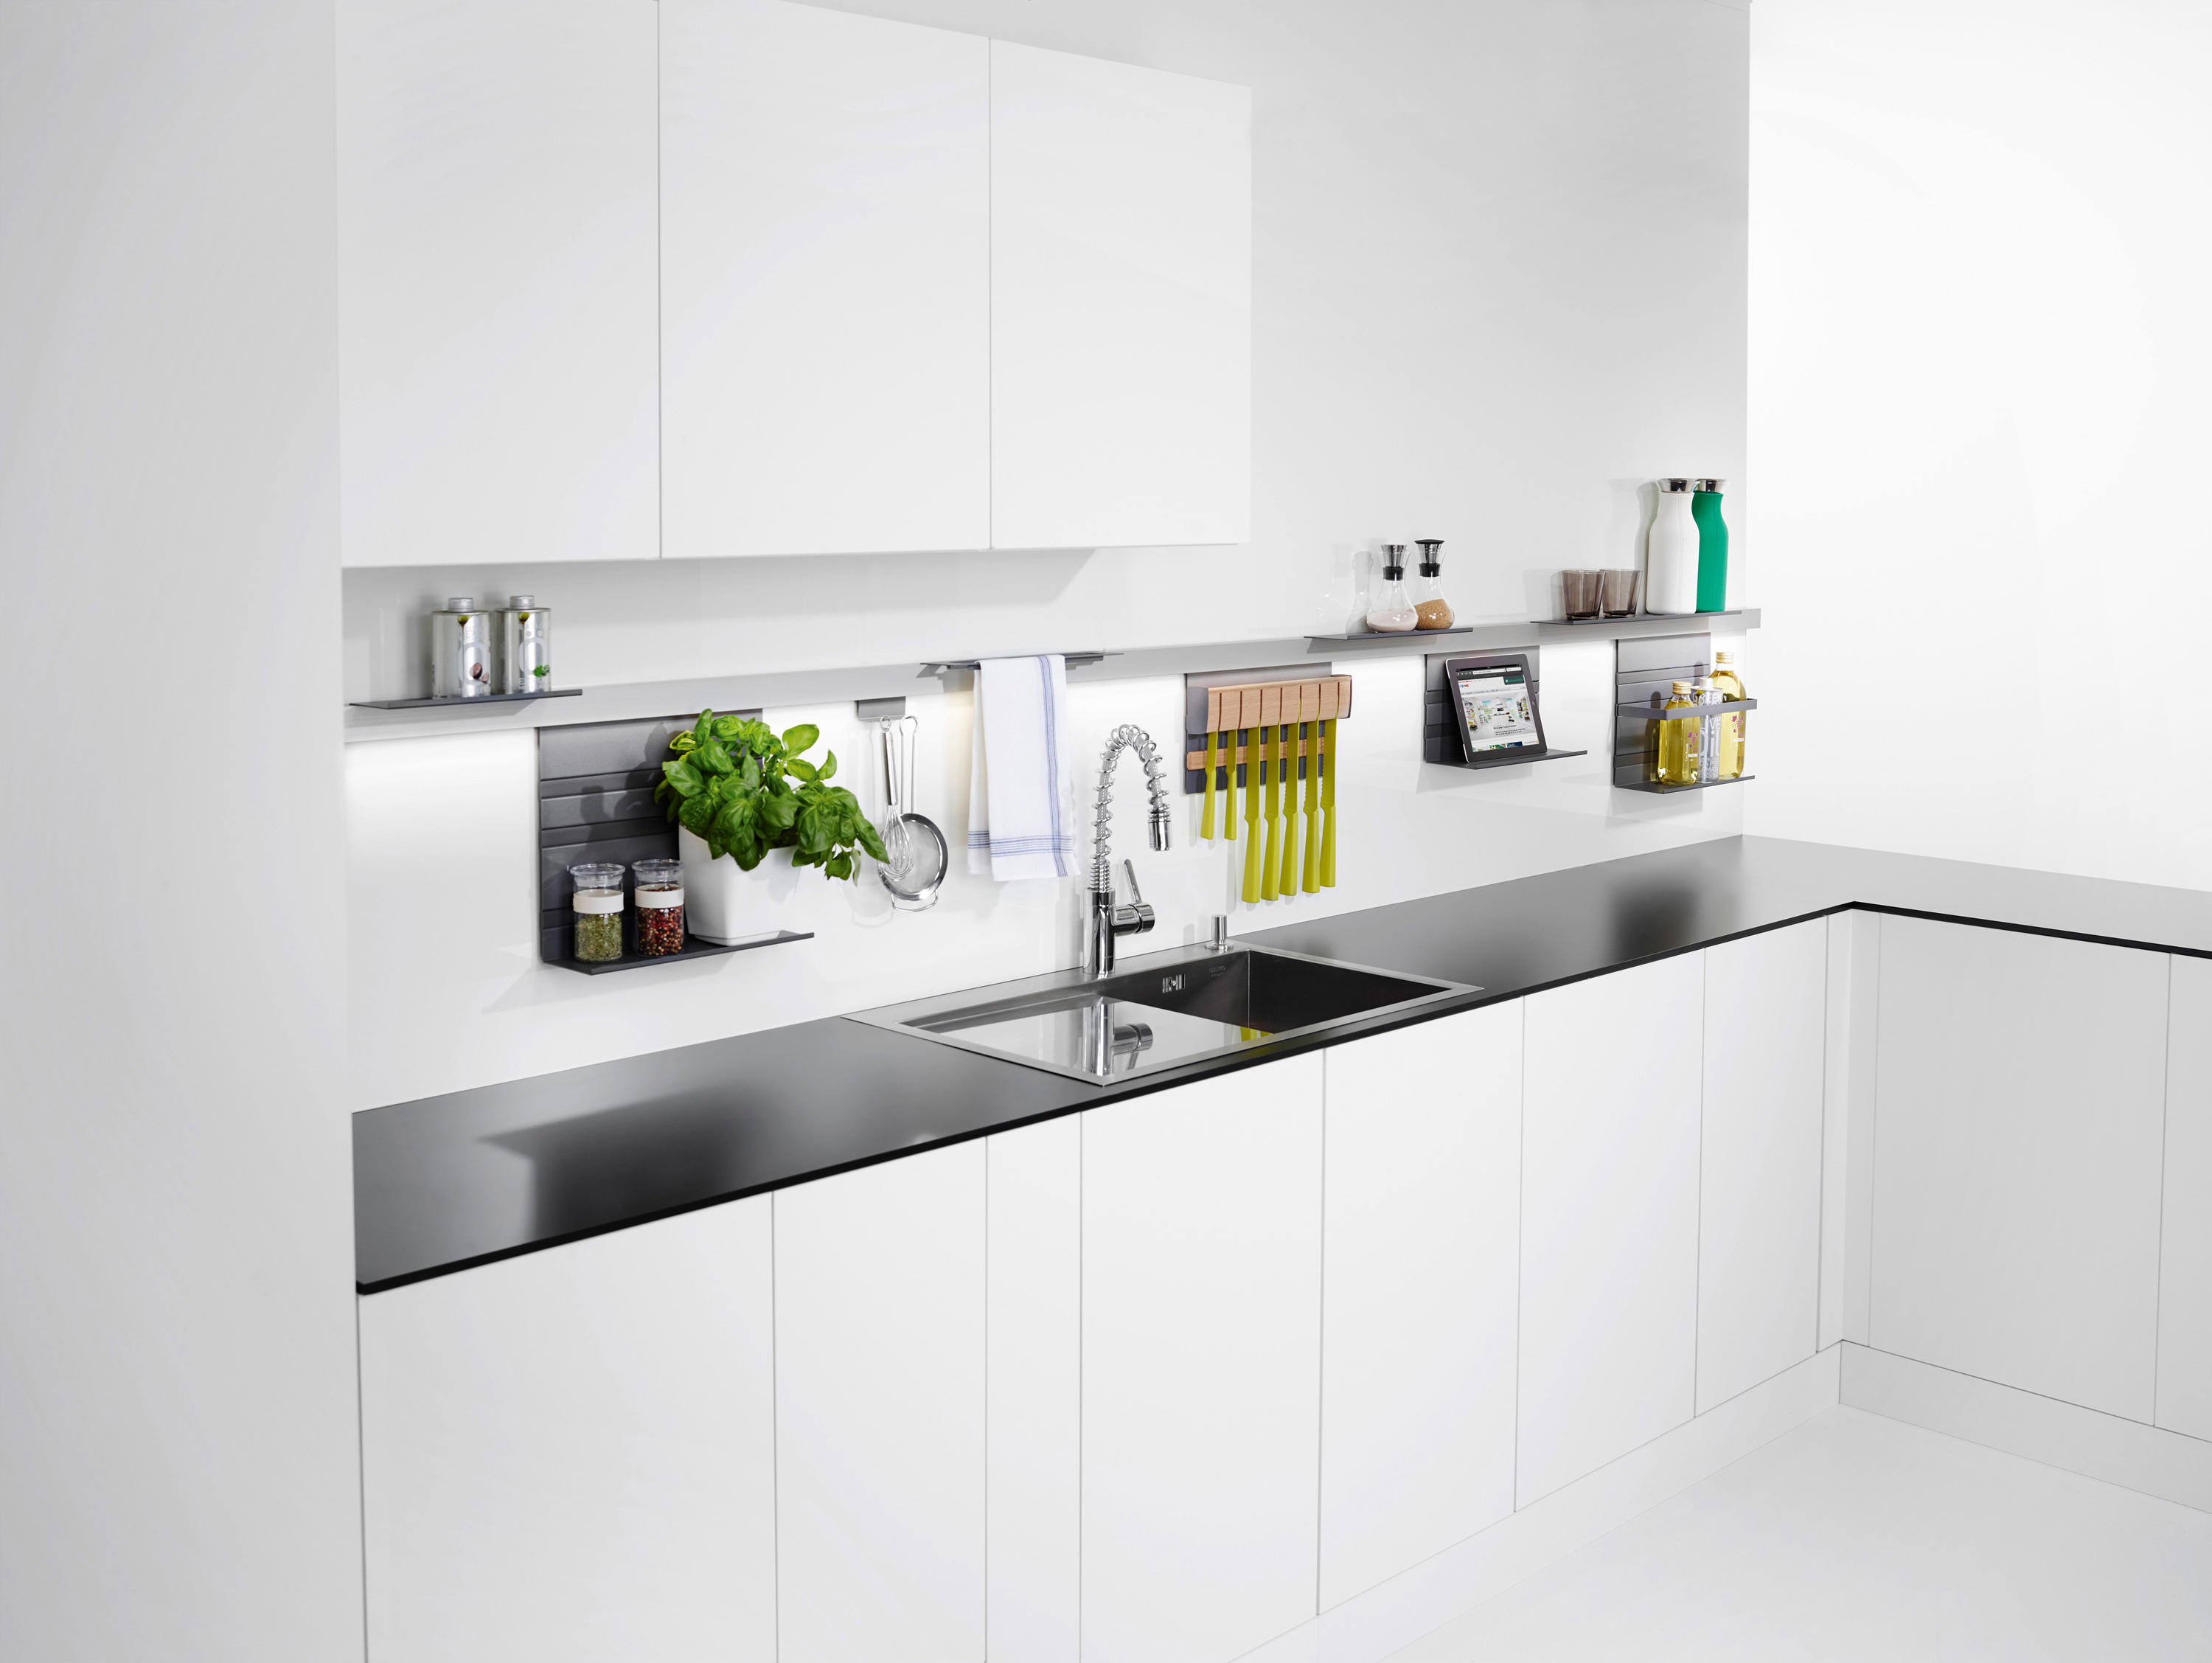 kitchen rail system stainless steel appliance package linero mosaiq organization from peka by